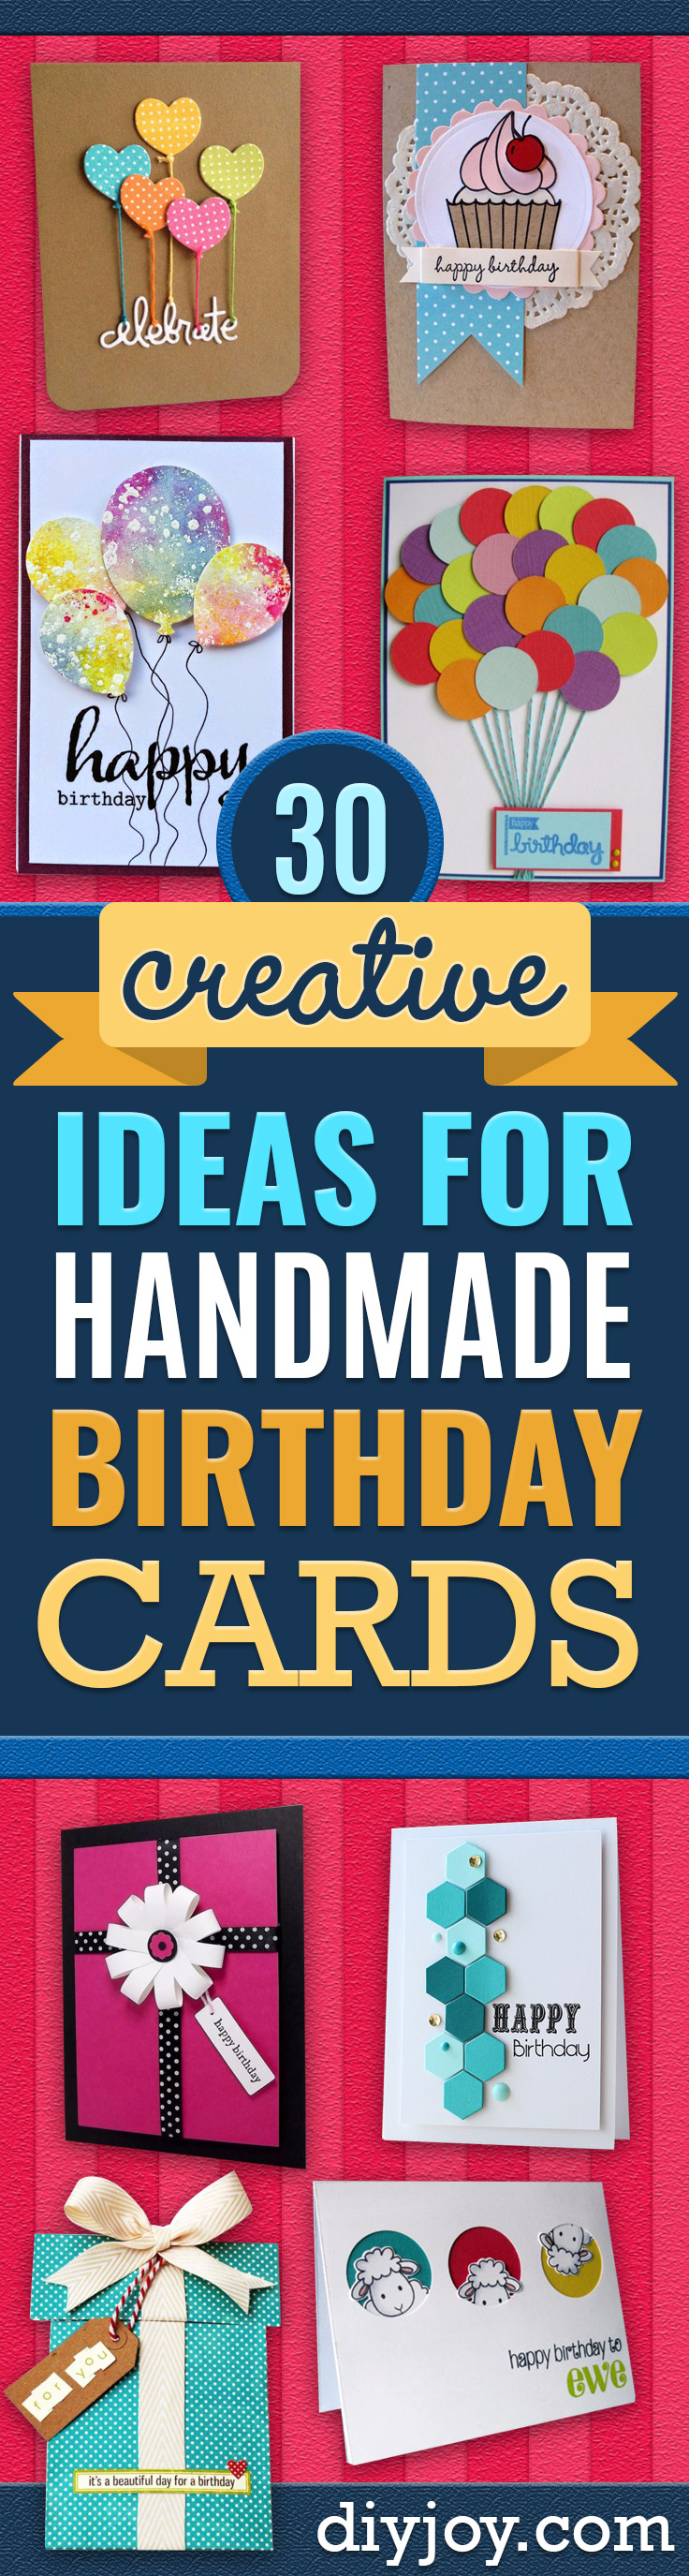 DIY Birthday Cards - Easy and Cheap Handmade Birthday Cards To Make At Home - Cute Card Projects With Step by Step Tutorials are Perfect for Birthdays for Mom, Dad, Kids and Adults - Pop Up and Folded Cards, Creative Gift Card Holders and Fun Ideas With Cake http://diyjoy.com/diy-birthday-cards